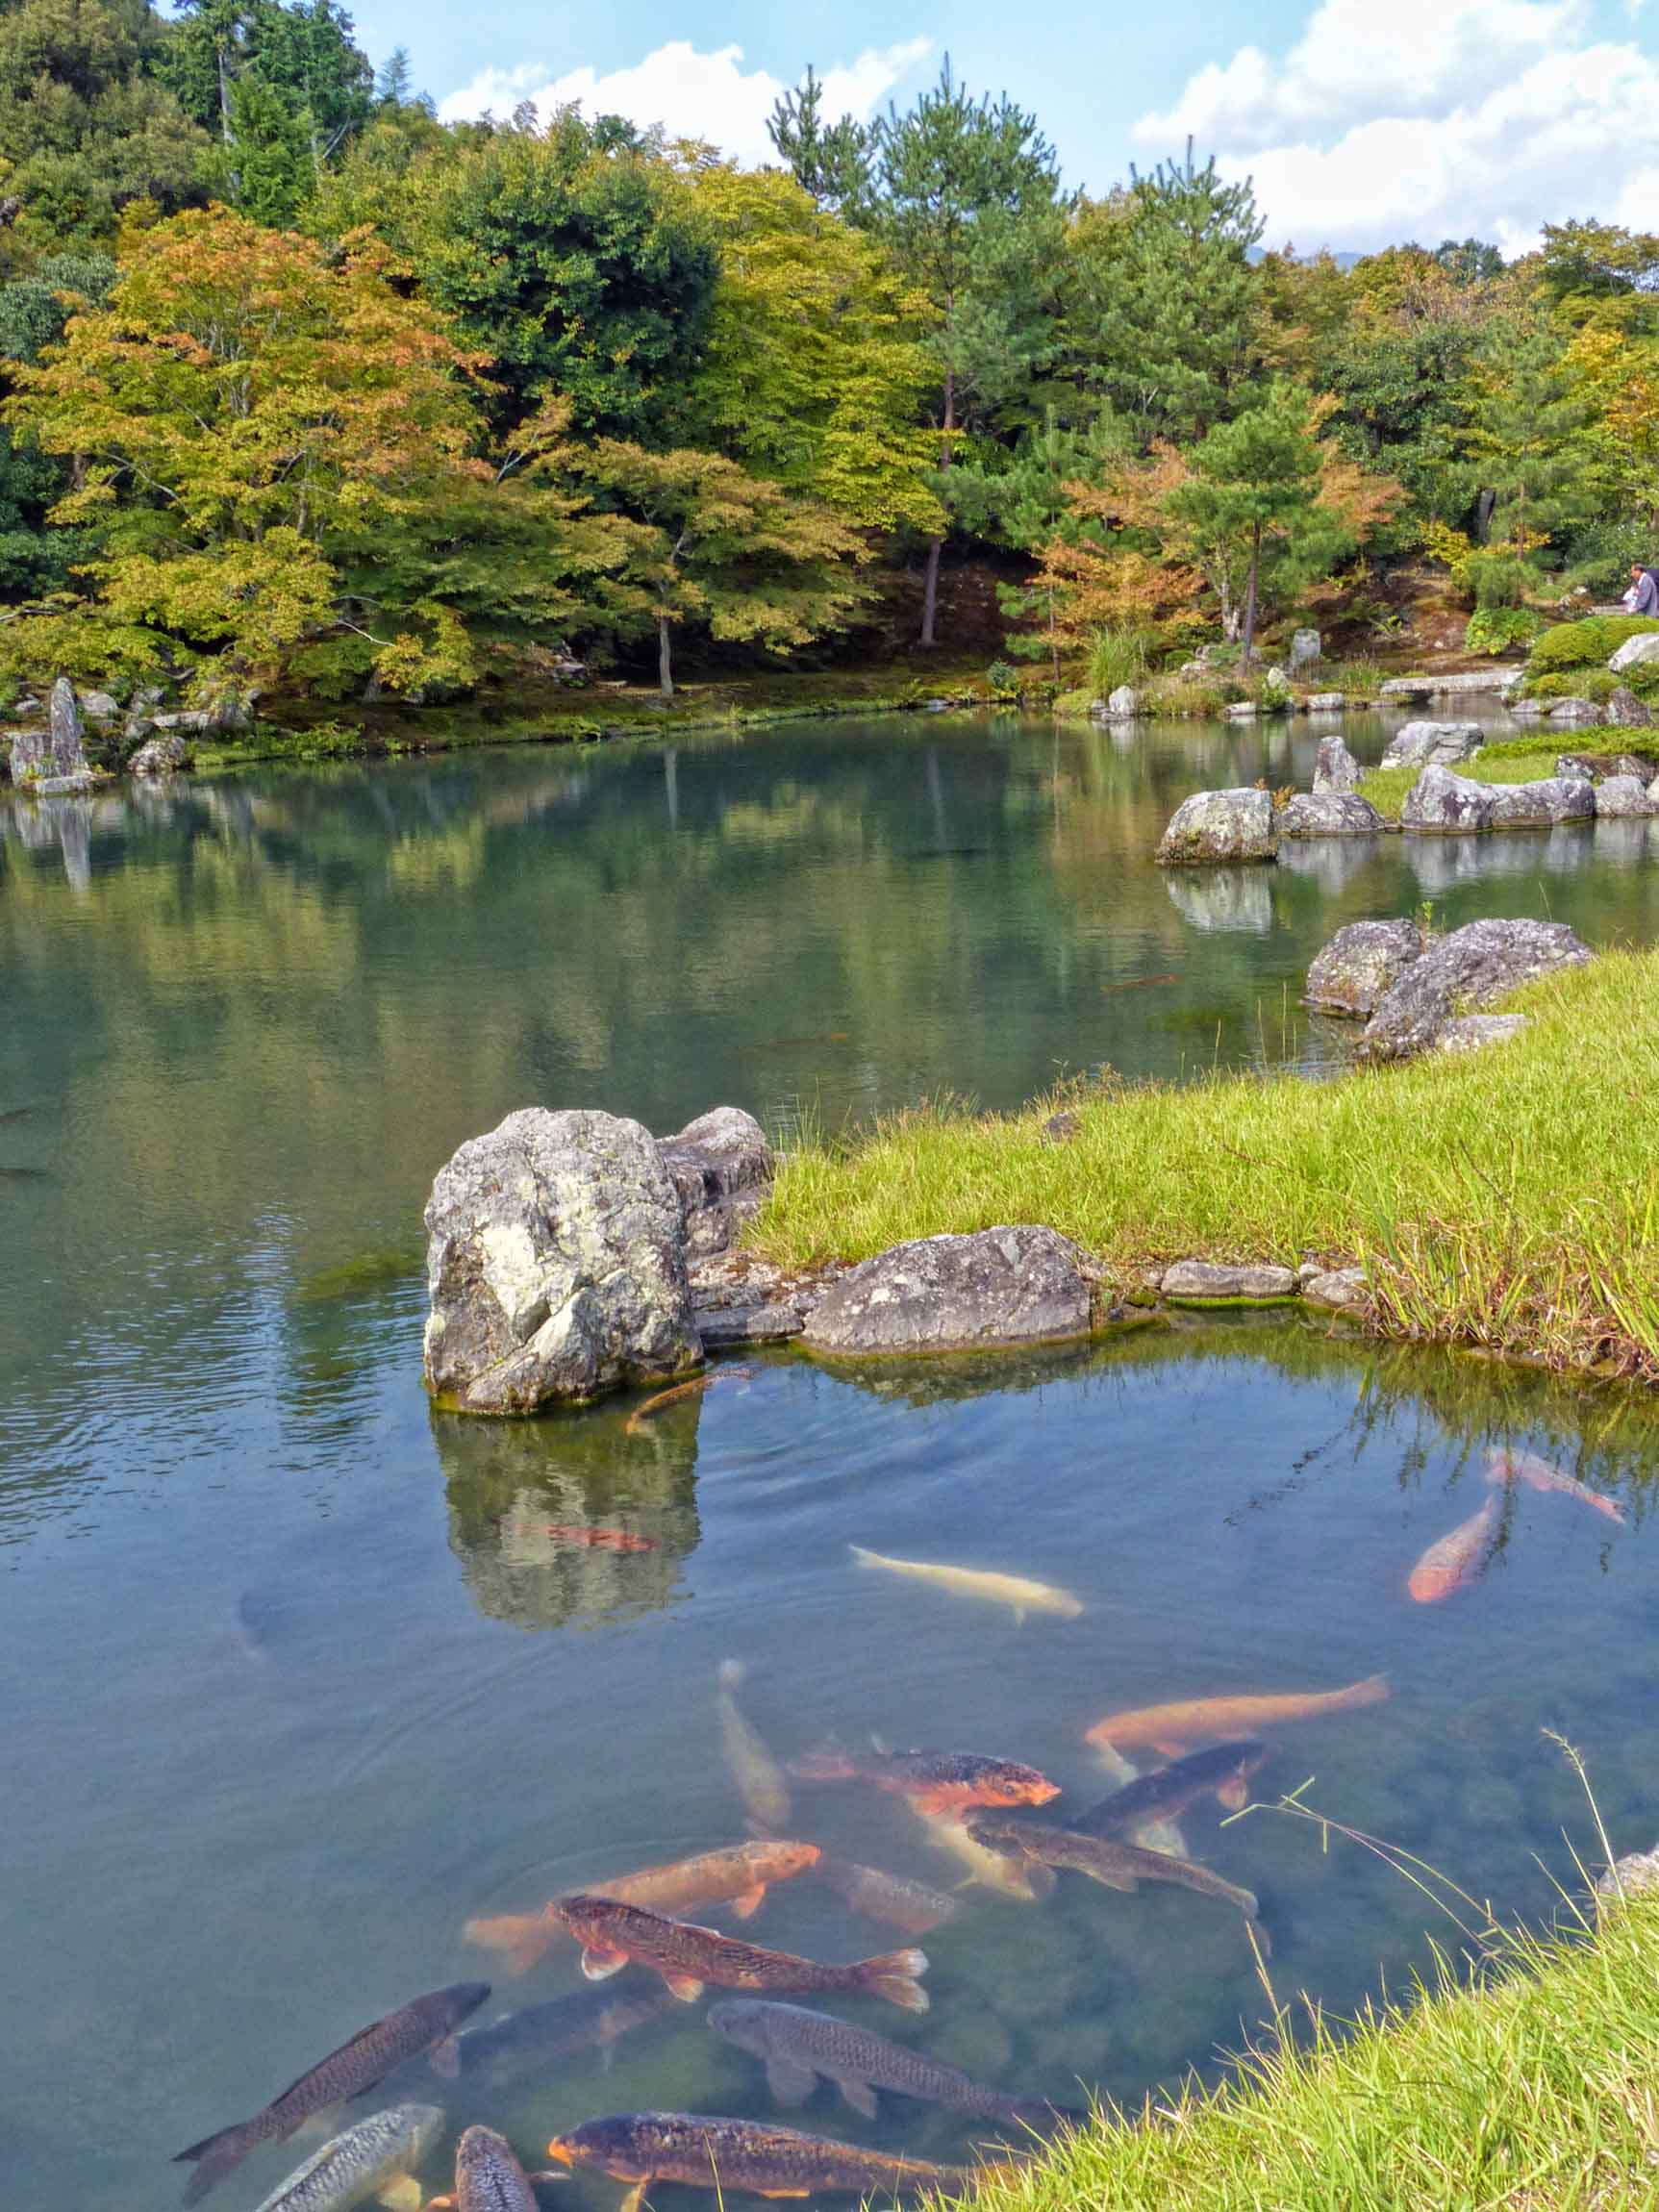 Japanese garden with ponds and carp